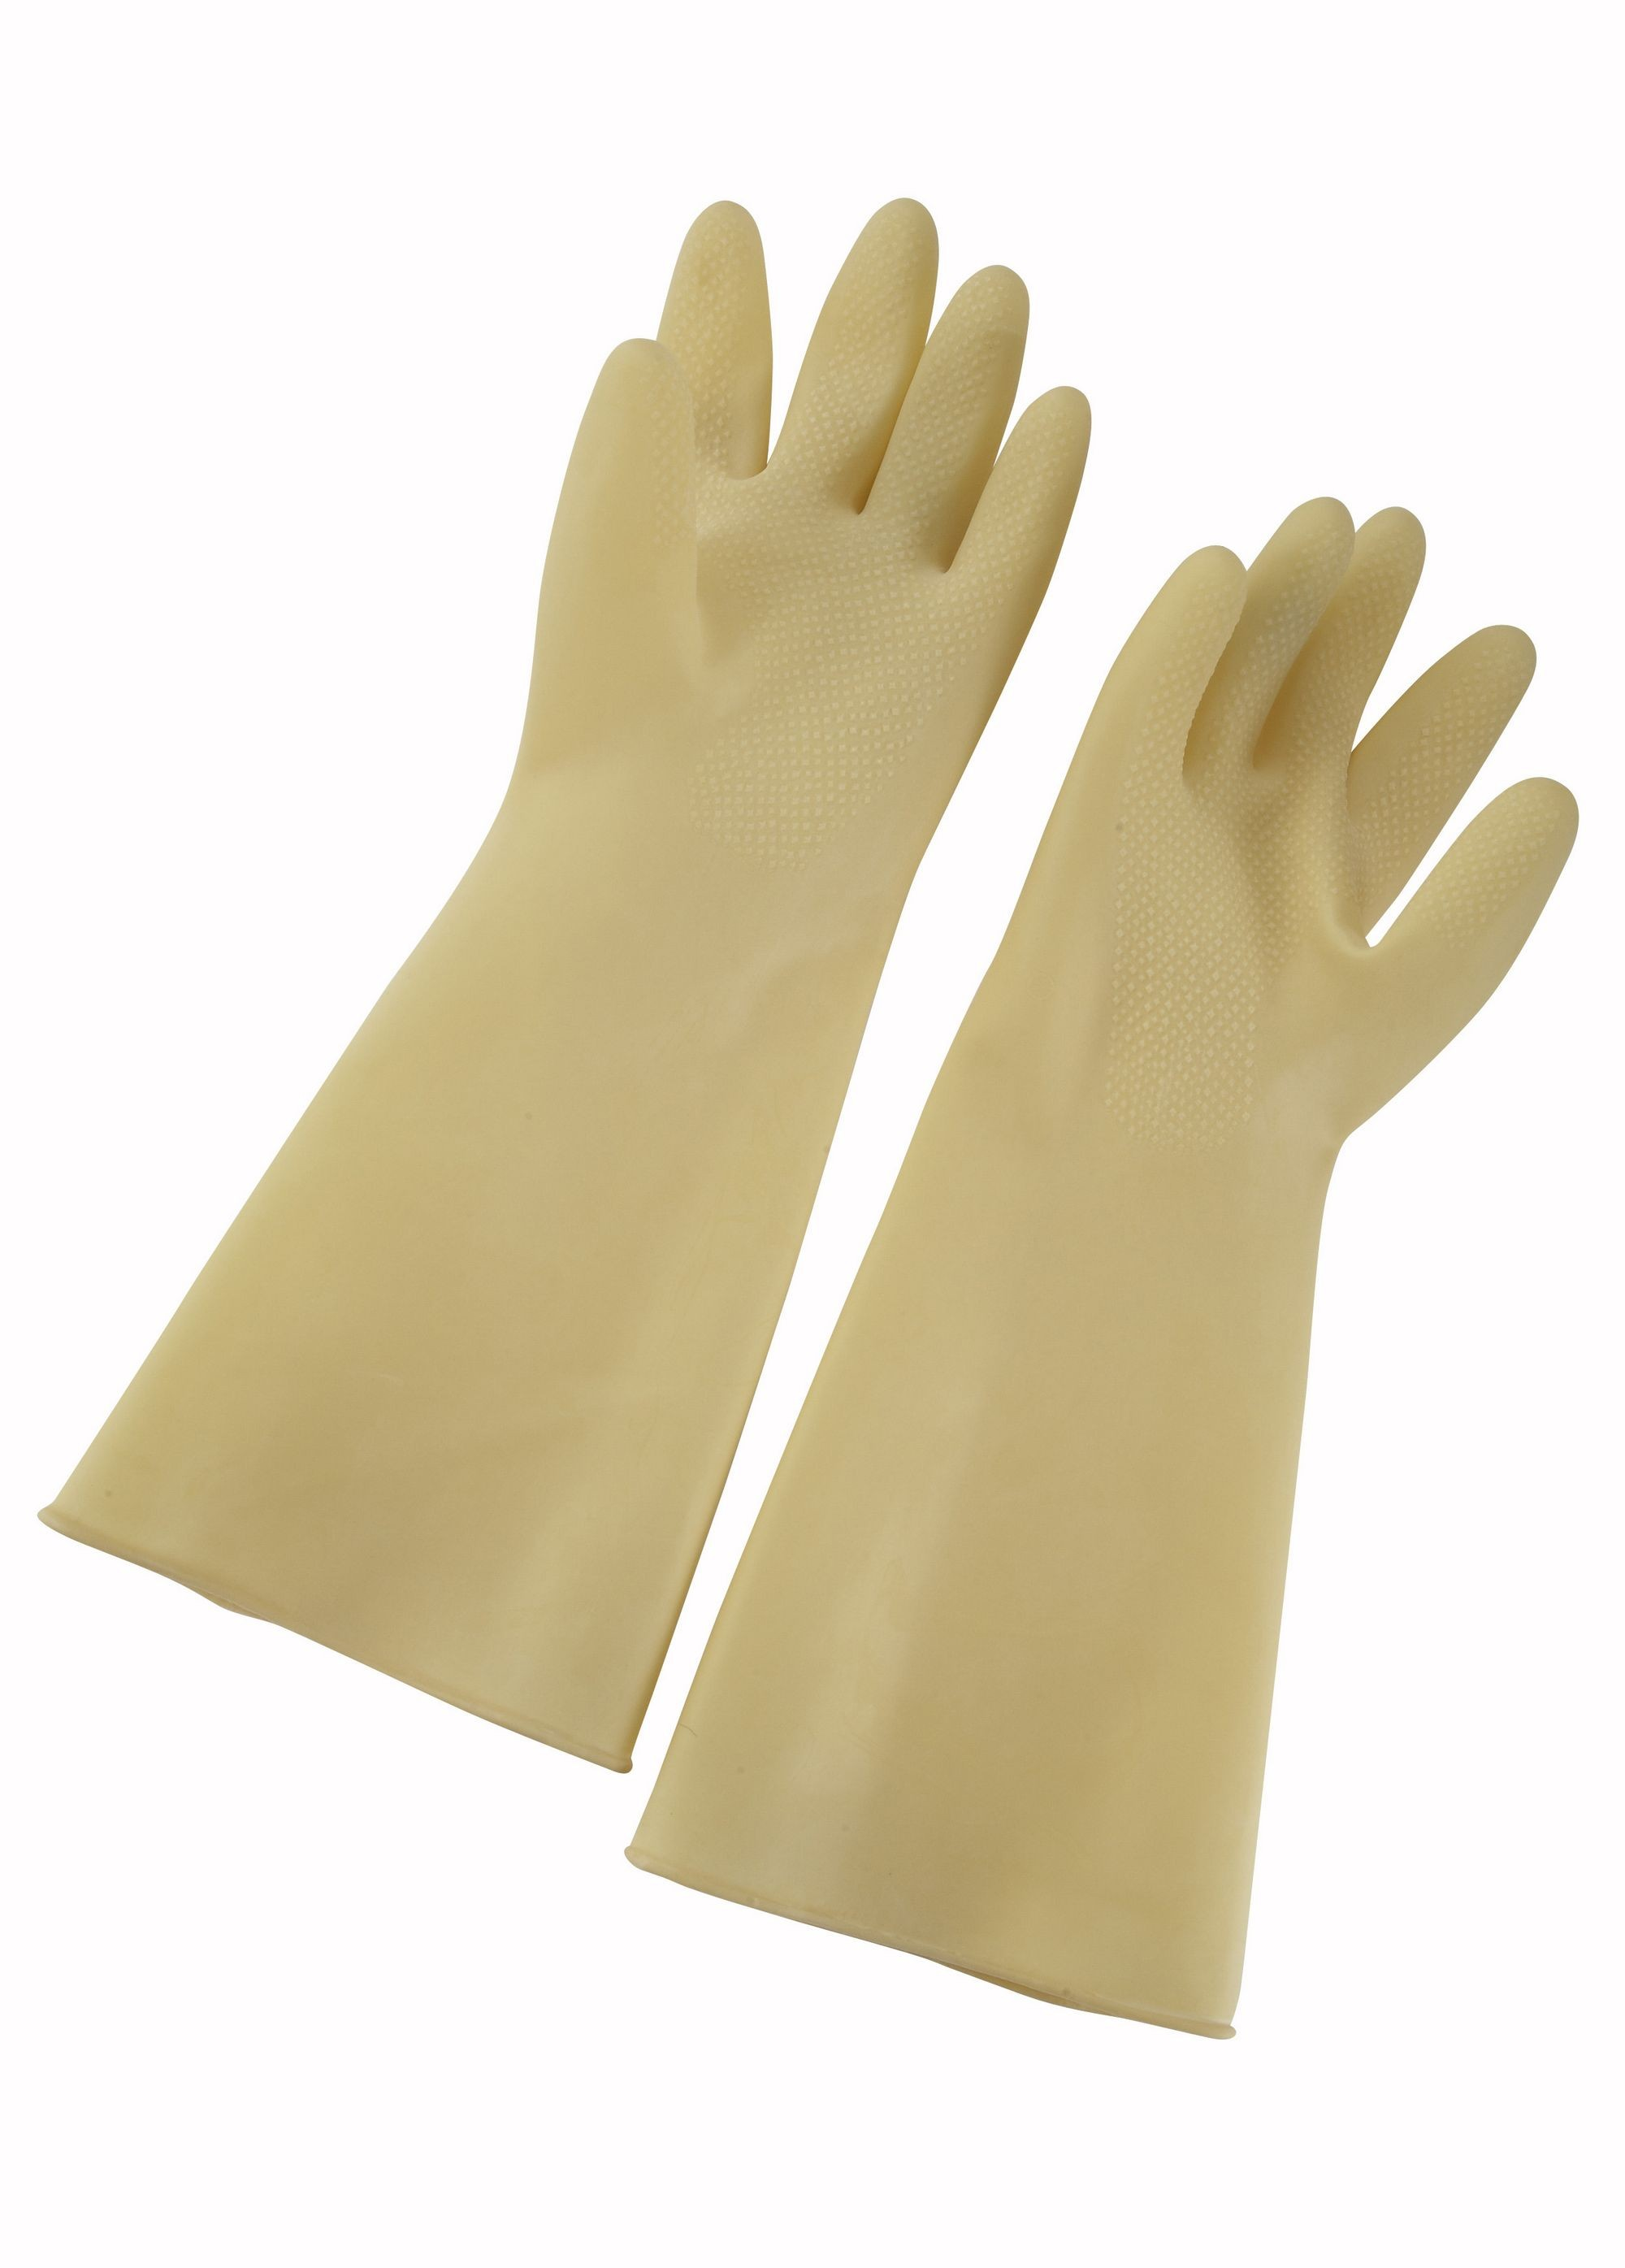 "Winco NLG-816 Natural Ivory Latex Gloves 8-1/2"" x 16"""